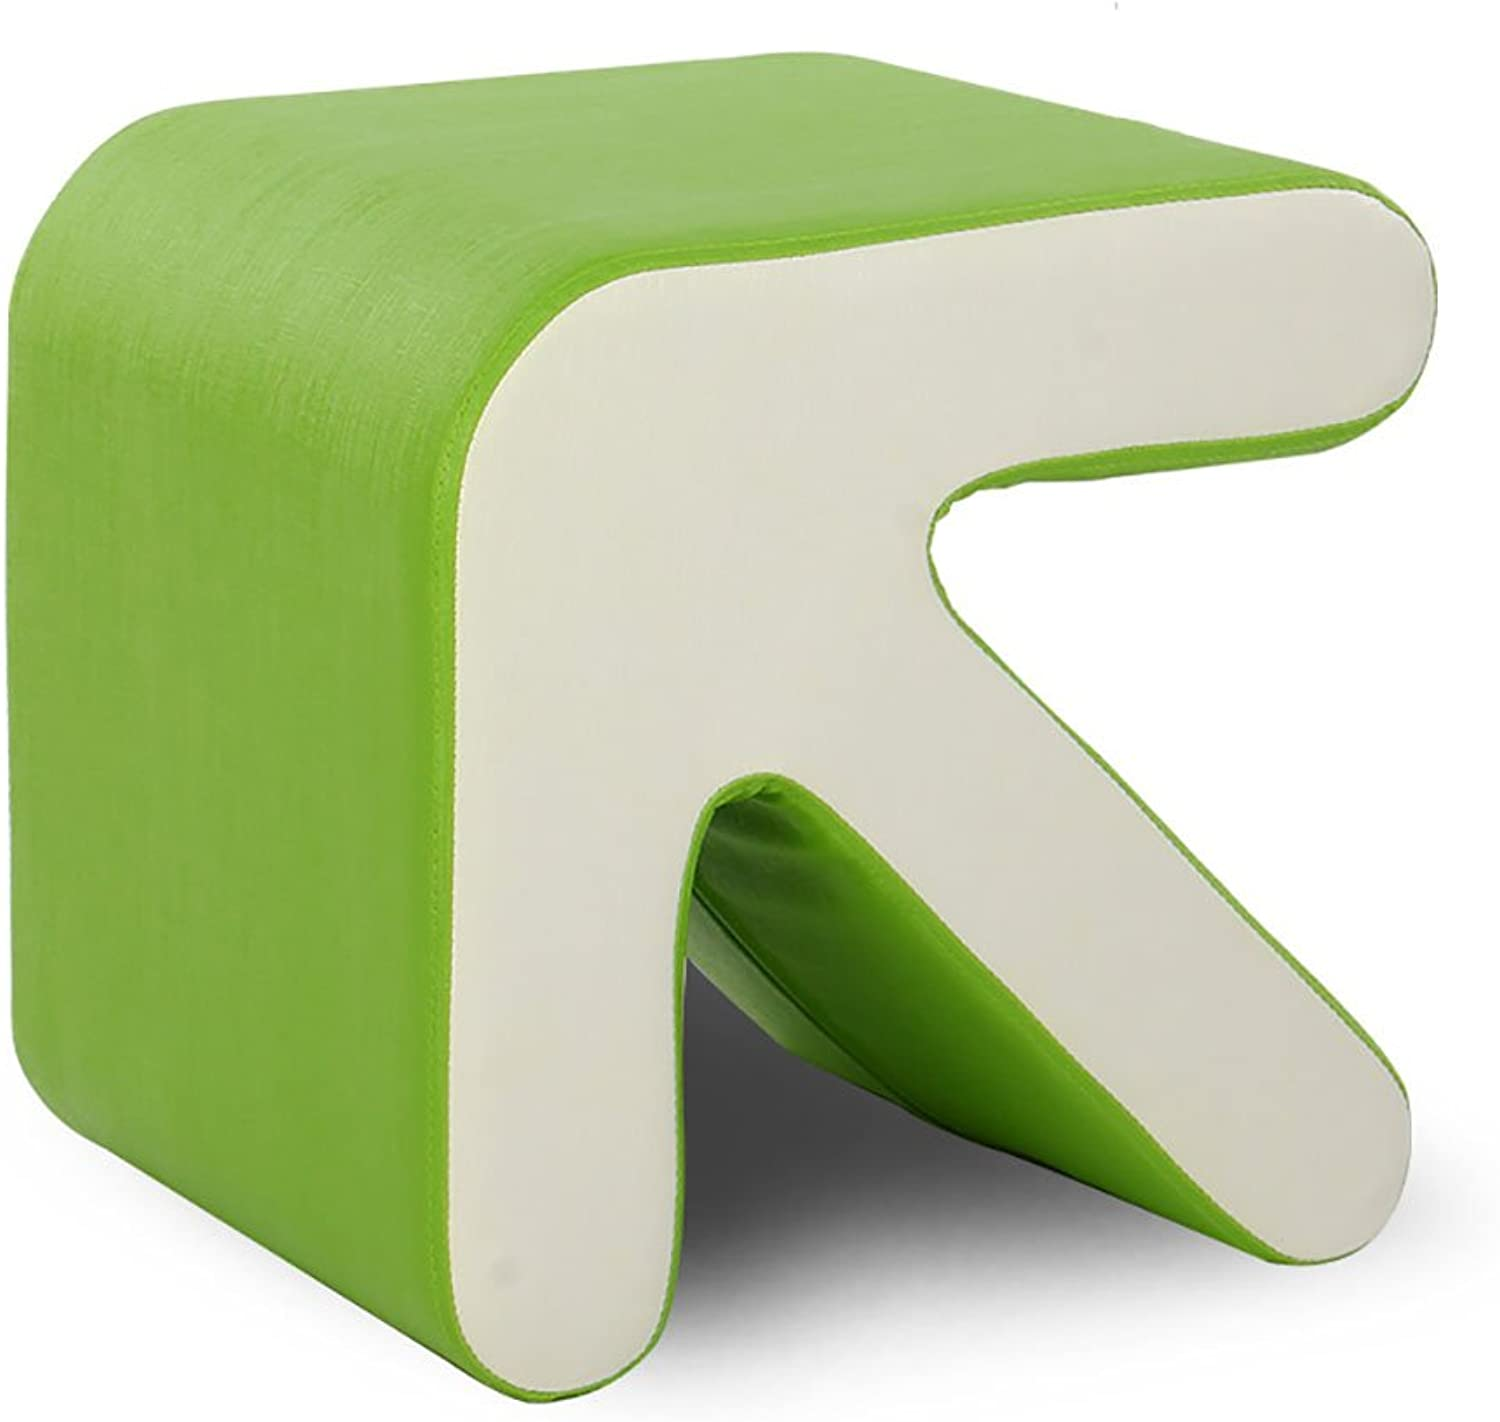 XRXY Solid Wood Arrow Footstool   Creative Changing shoes Stool   Living Room Sofa Stool   Bed Tail Low Stool ( color   Green )